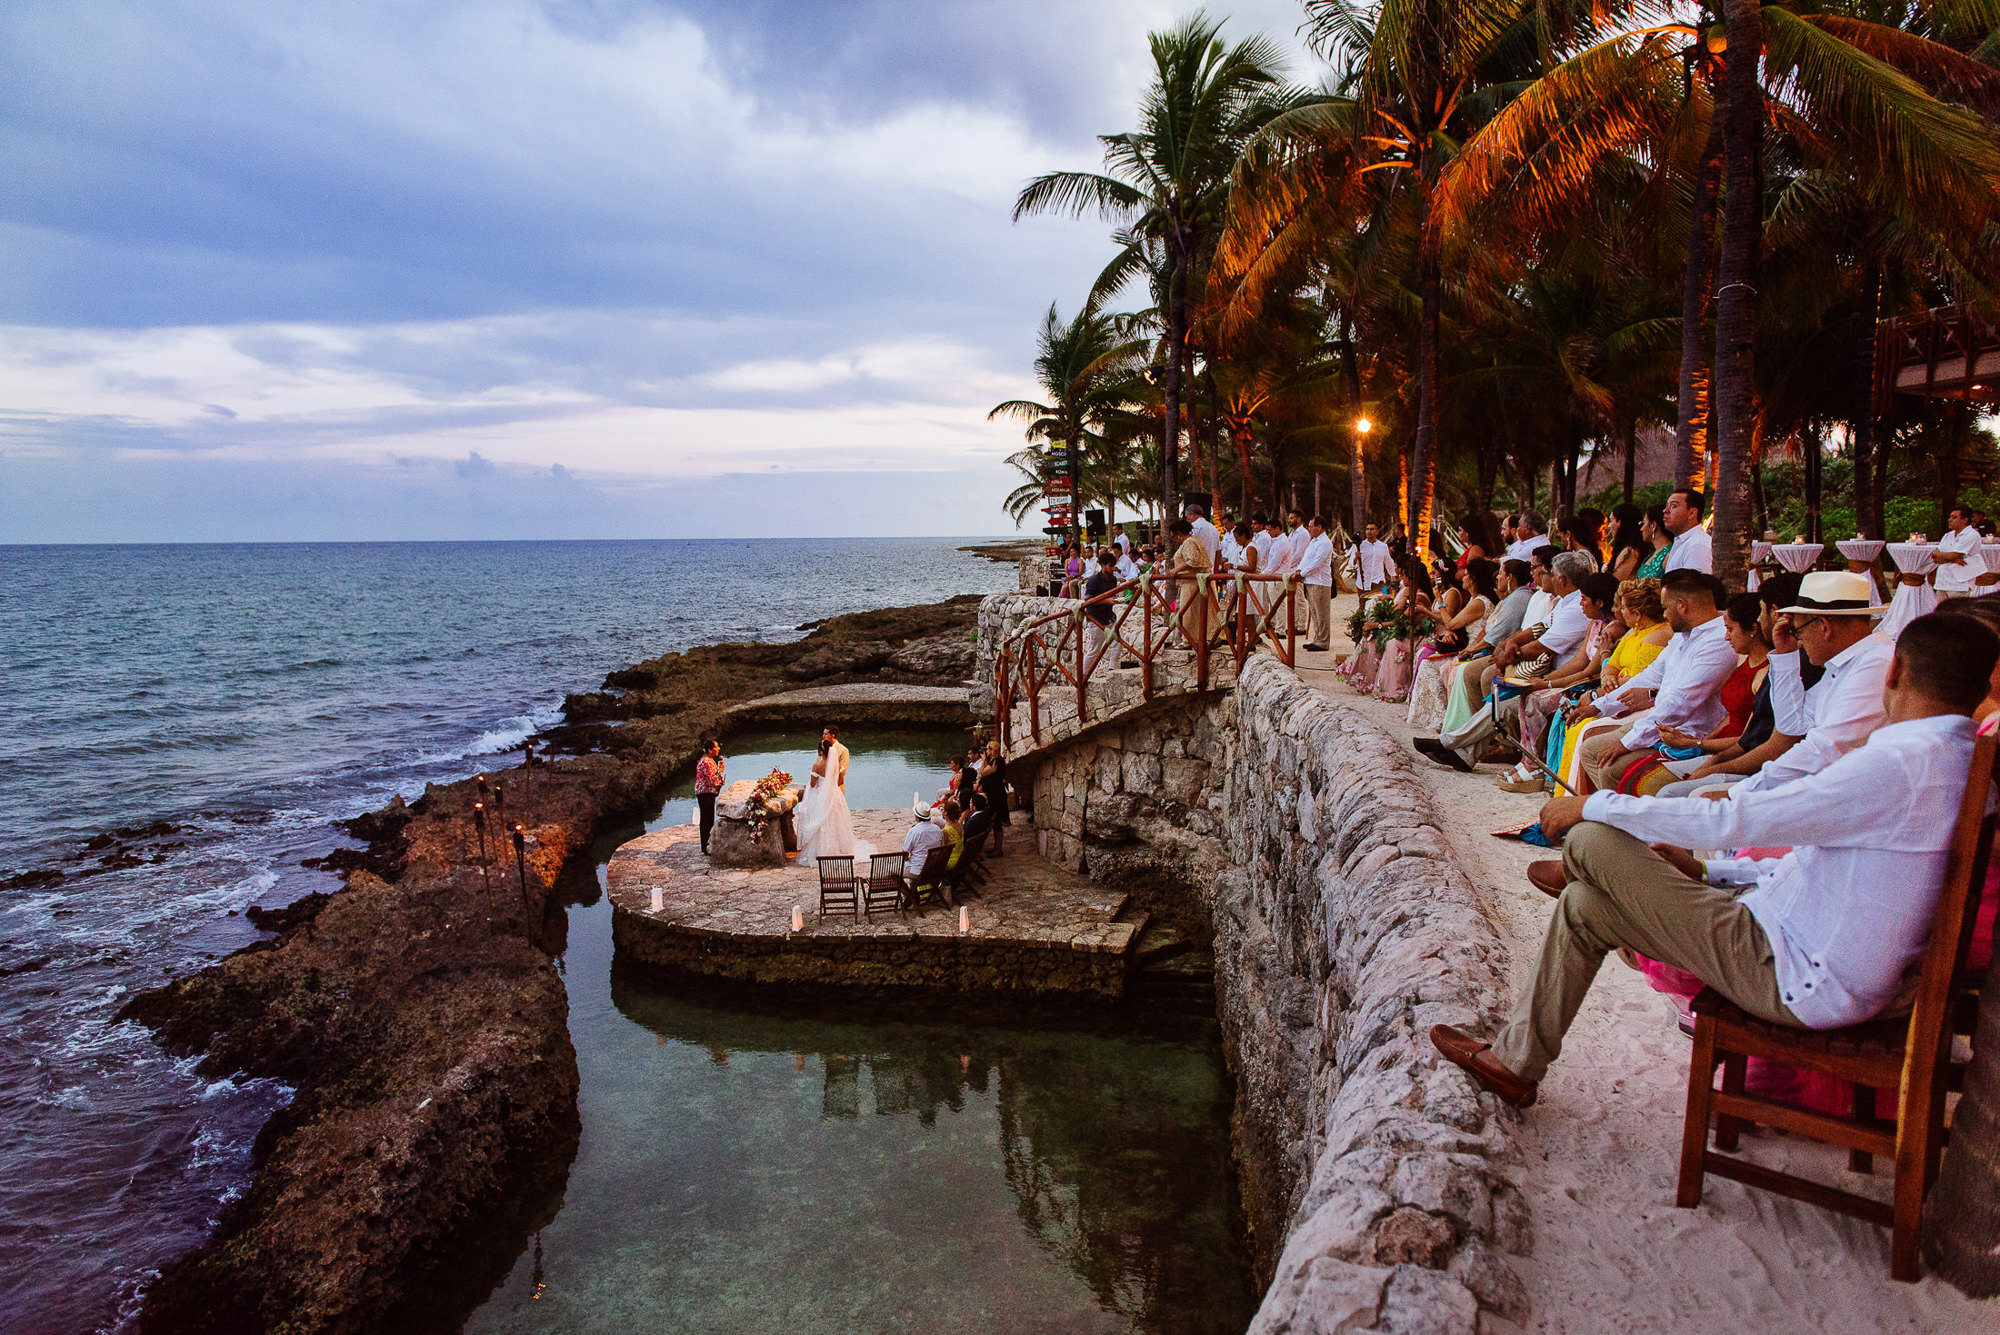 Epic ceremony by the beach in Mexico, by Citlalli Rico